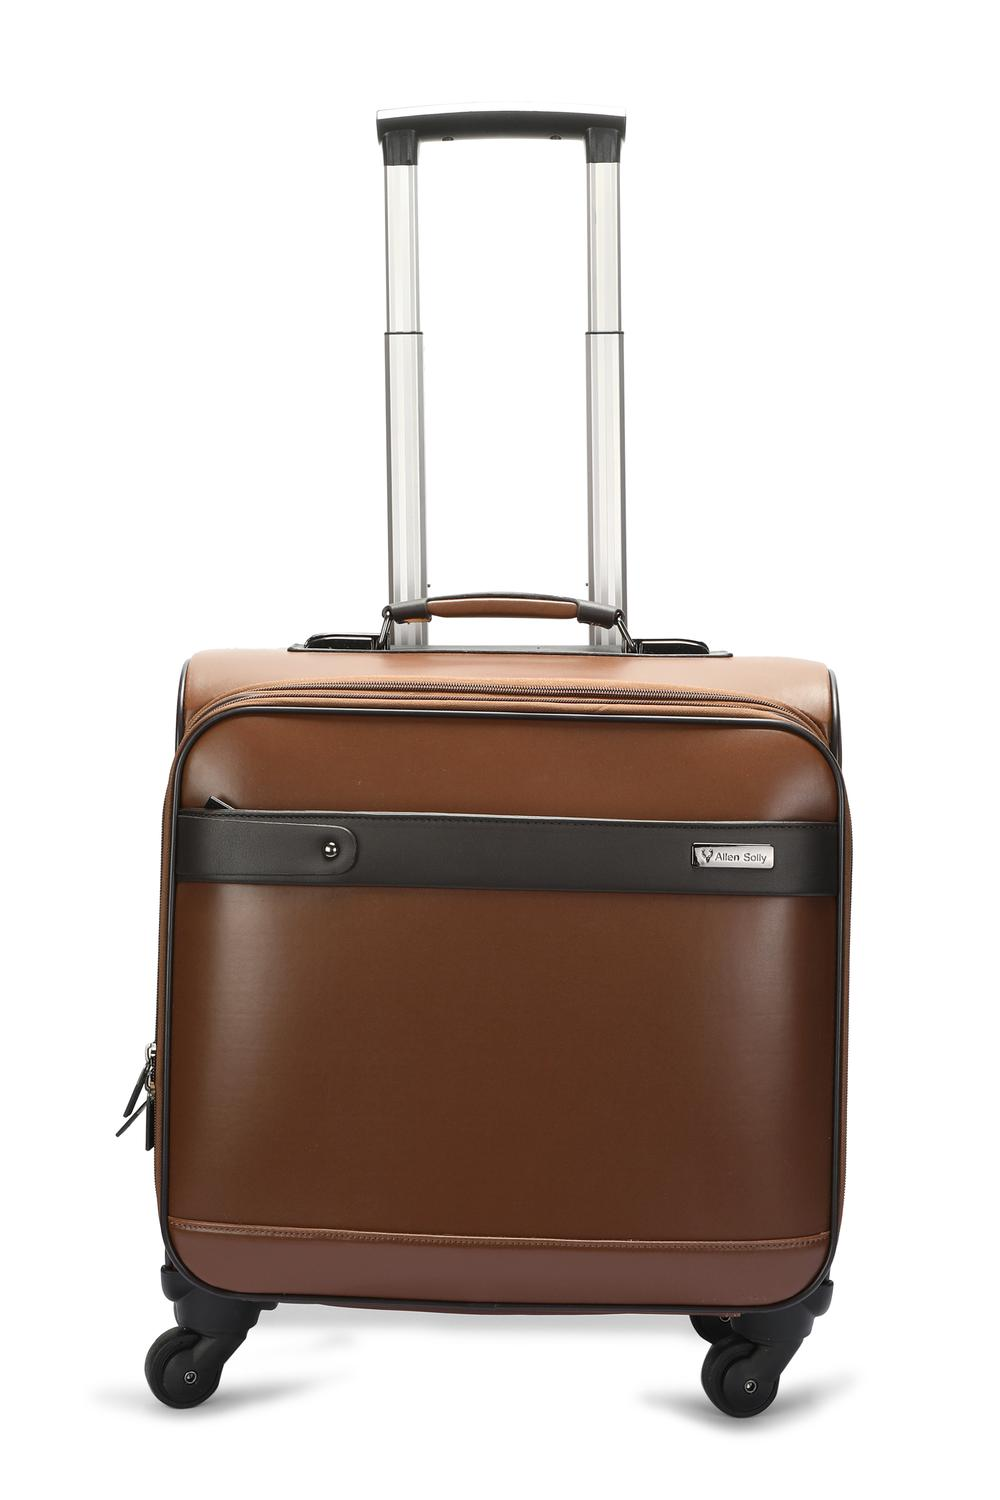 4fc5d4753140 Allen Solly Accessories, Allen Solly Brown Trolley Bag for Men at  Allensolly.com